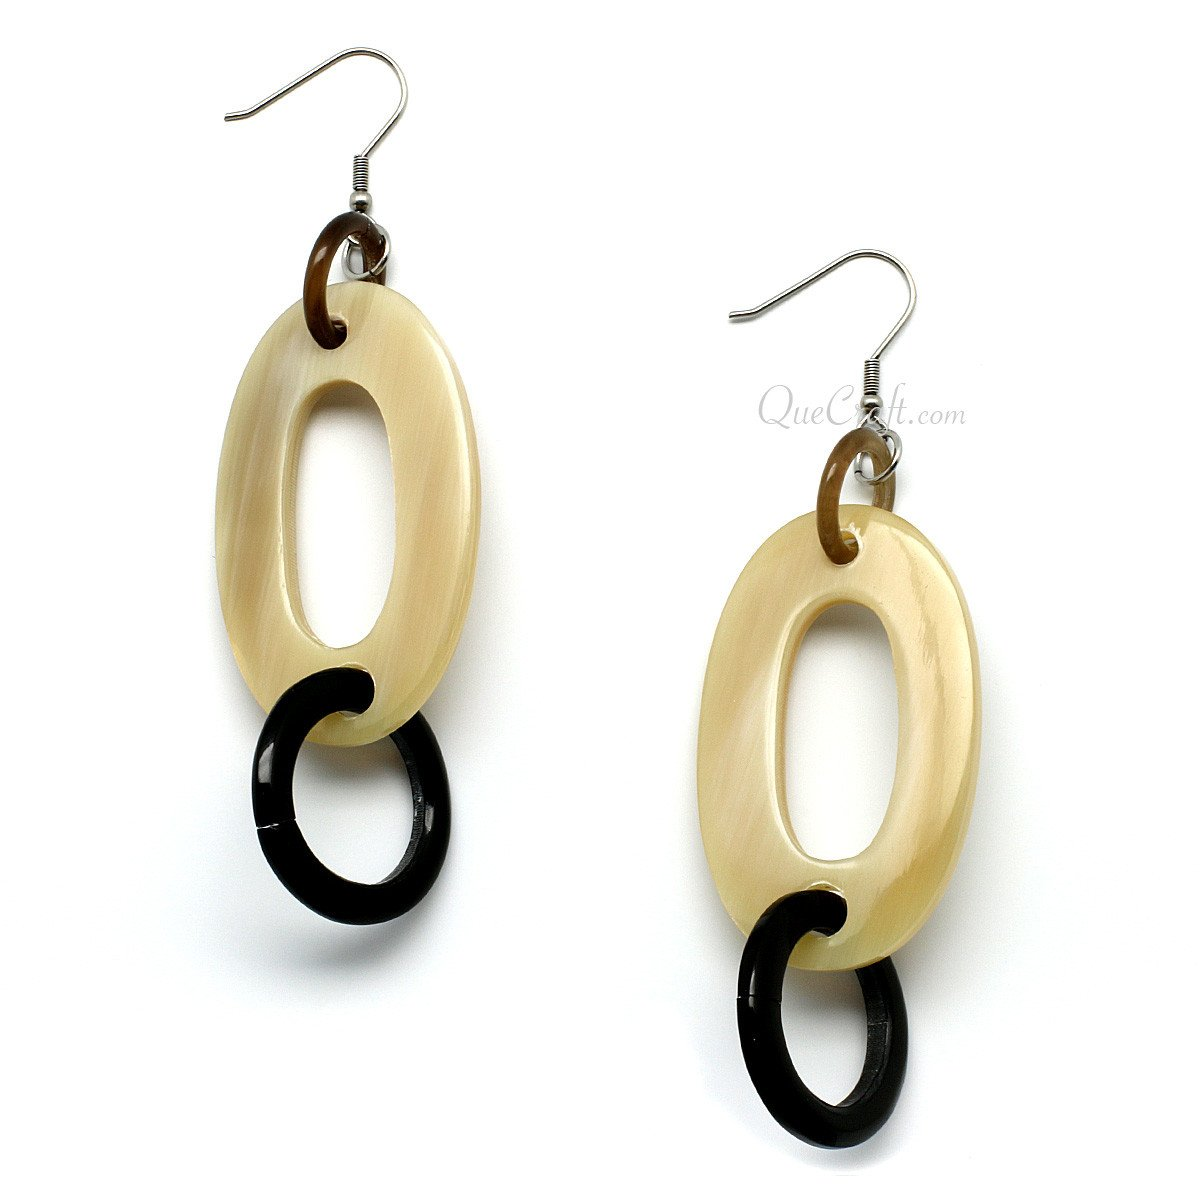 Horn Earrings #9989 - HORN.JEWELRY by QueCraft